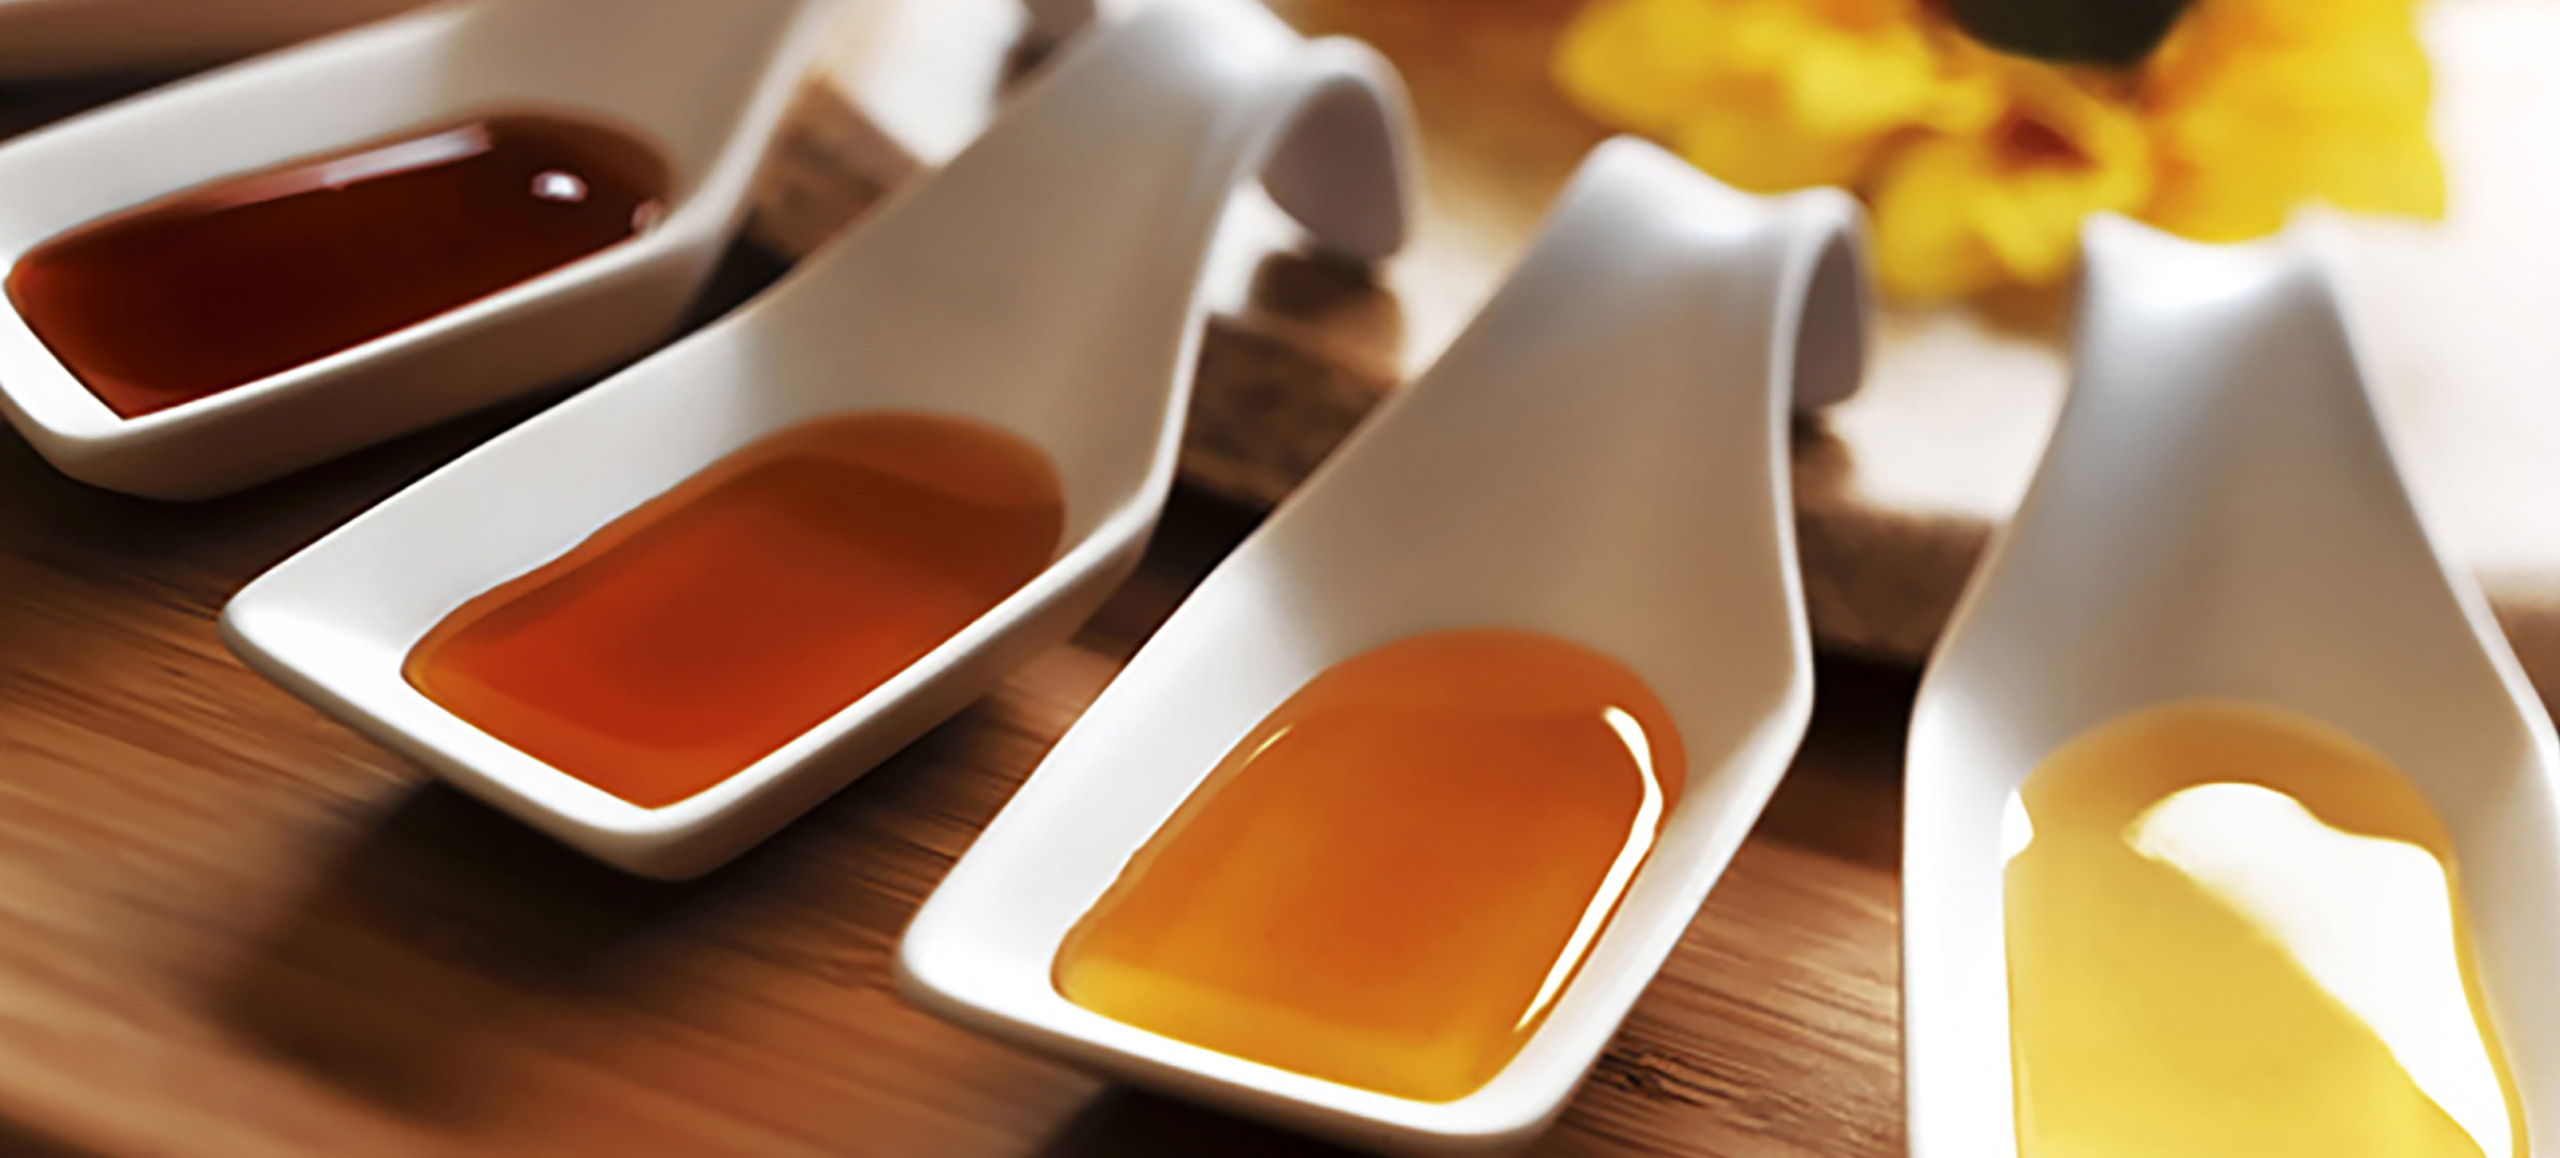 BENEFITS OF USING HONEY DURING WINTERS AND POLLUTION